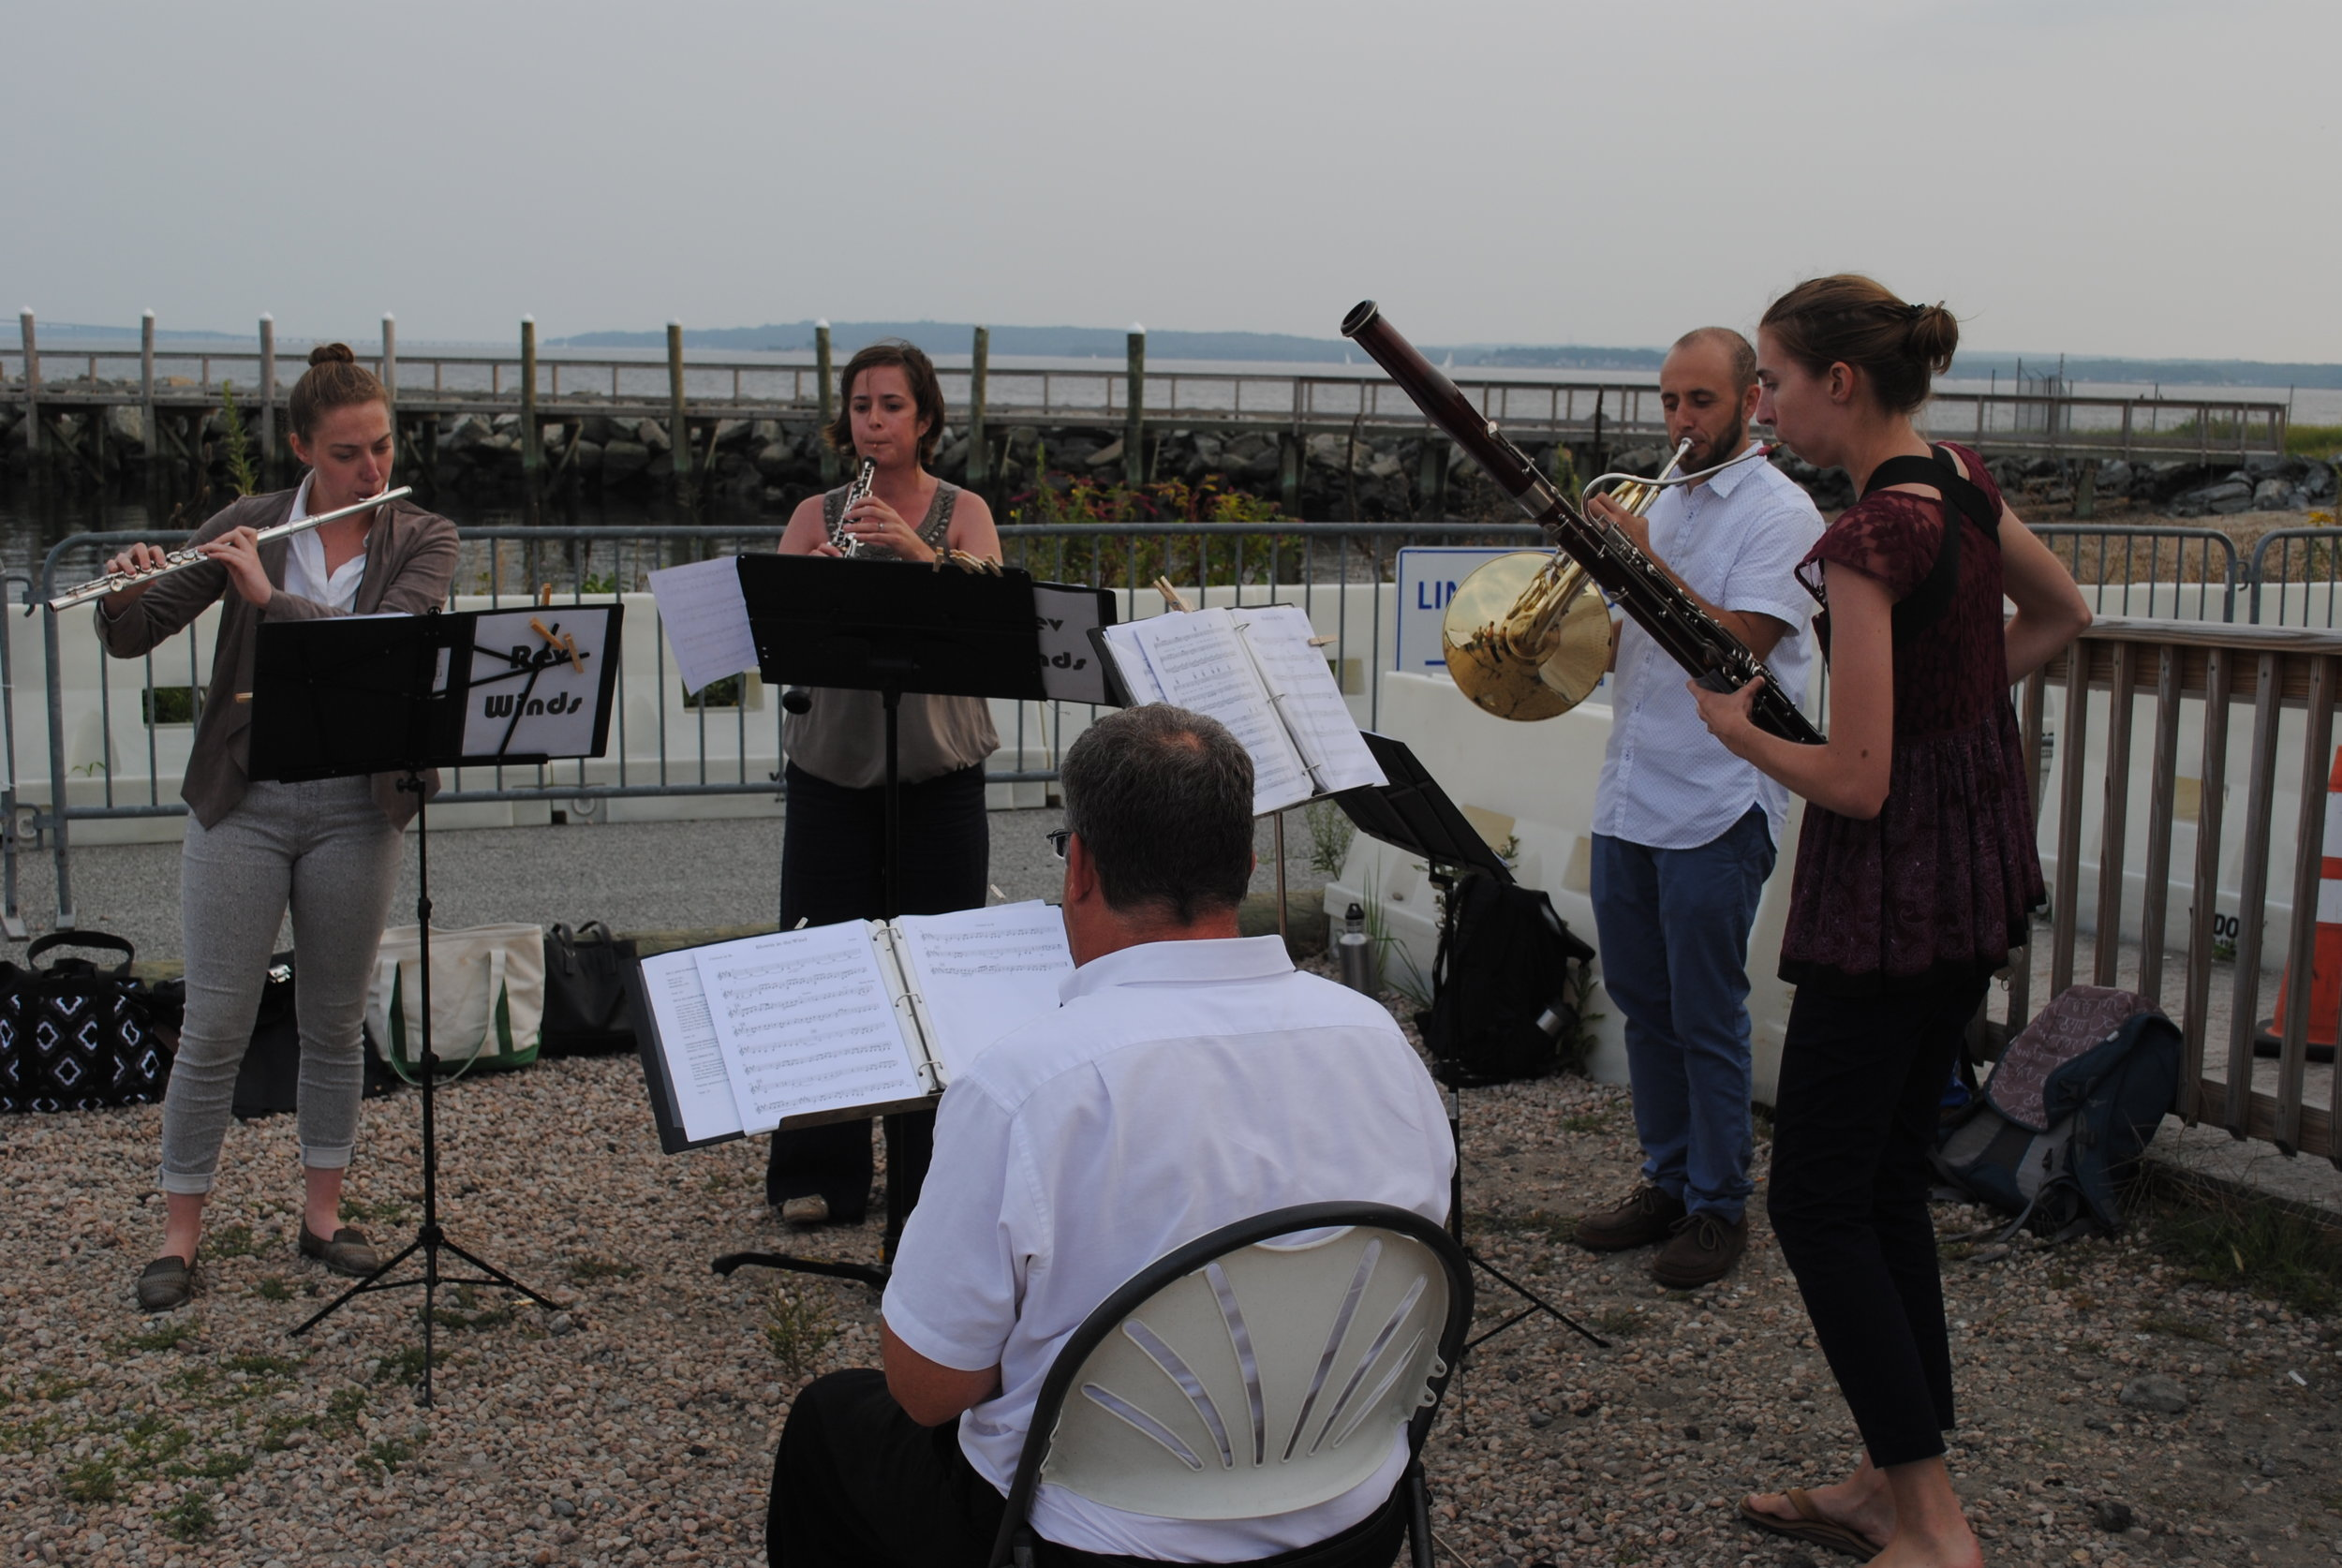 Revolution Winds performing on the shore after the boat tour